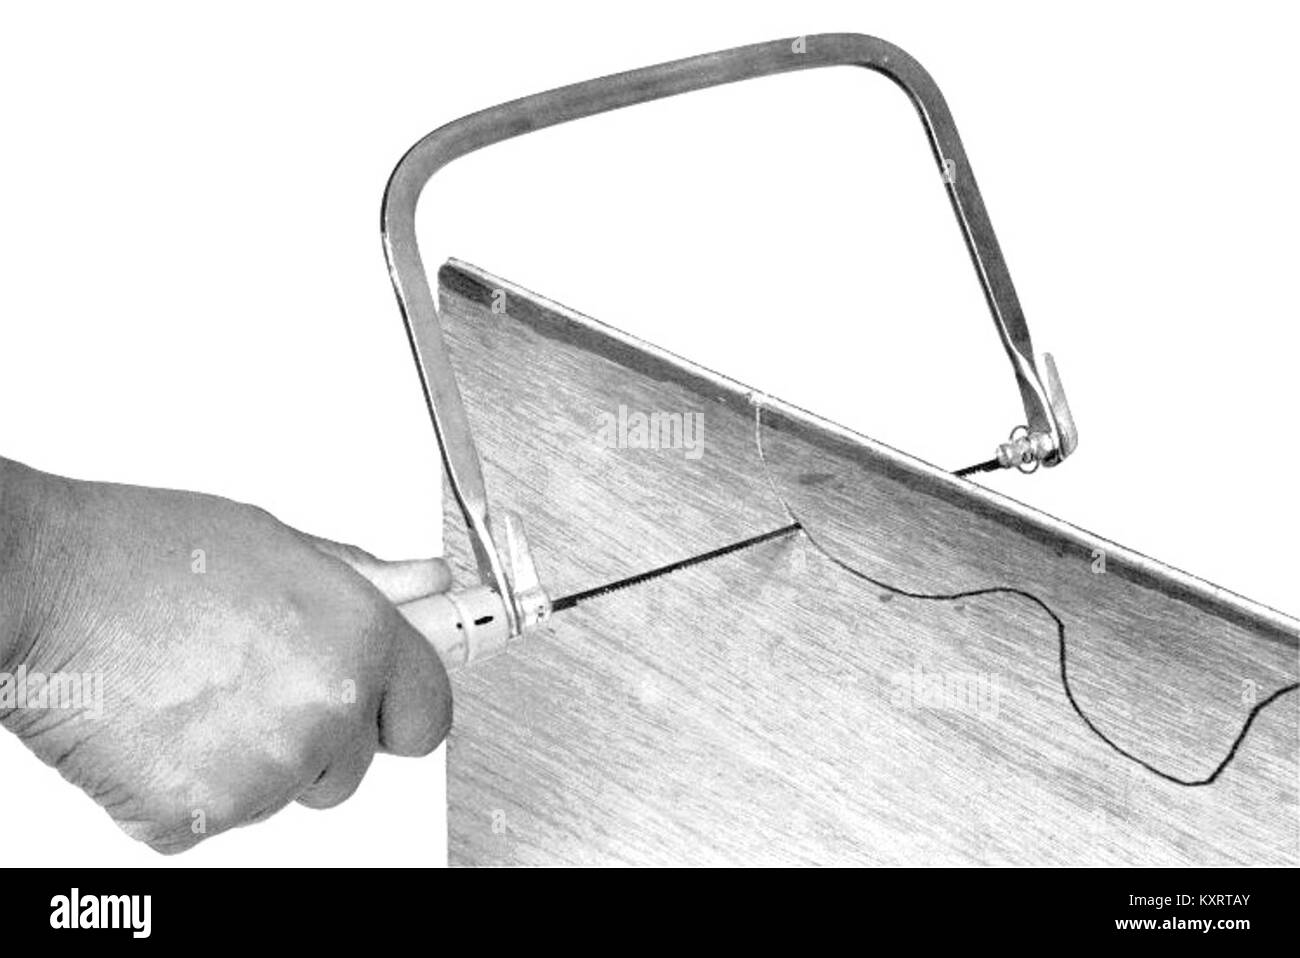 Coping saw (PSF) - Stock Image